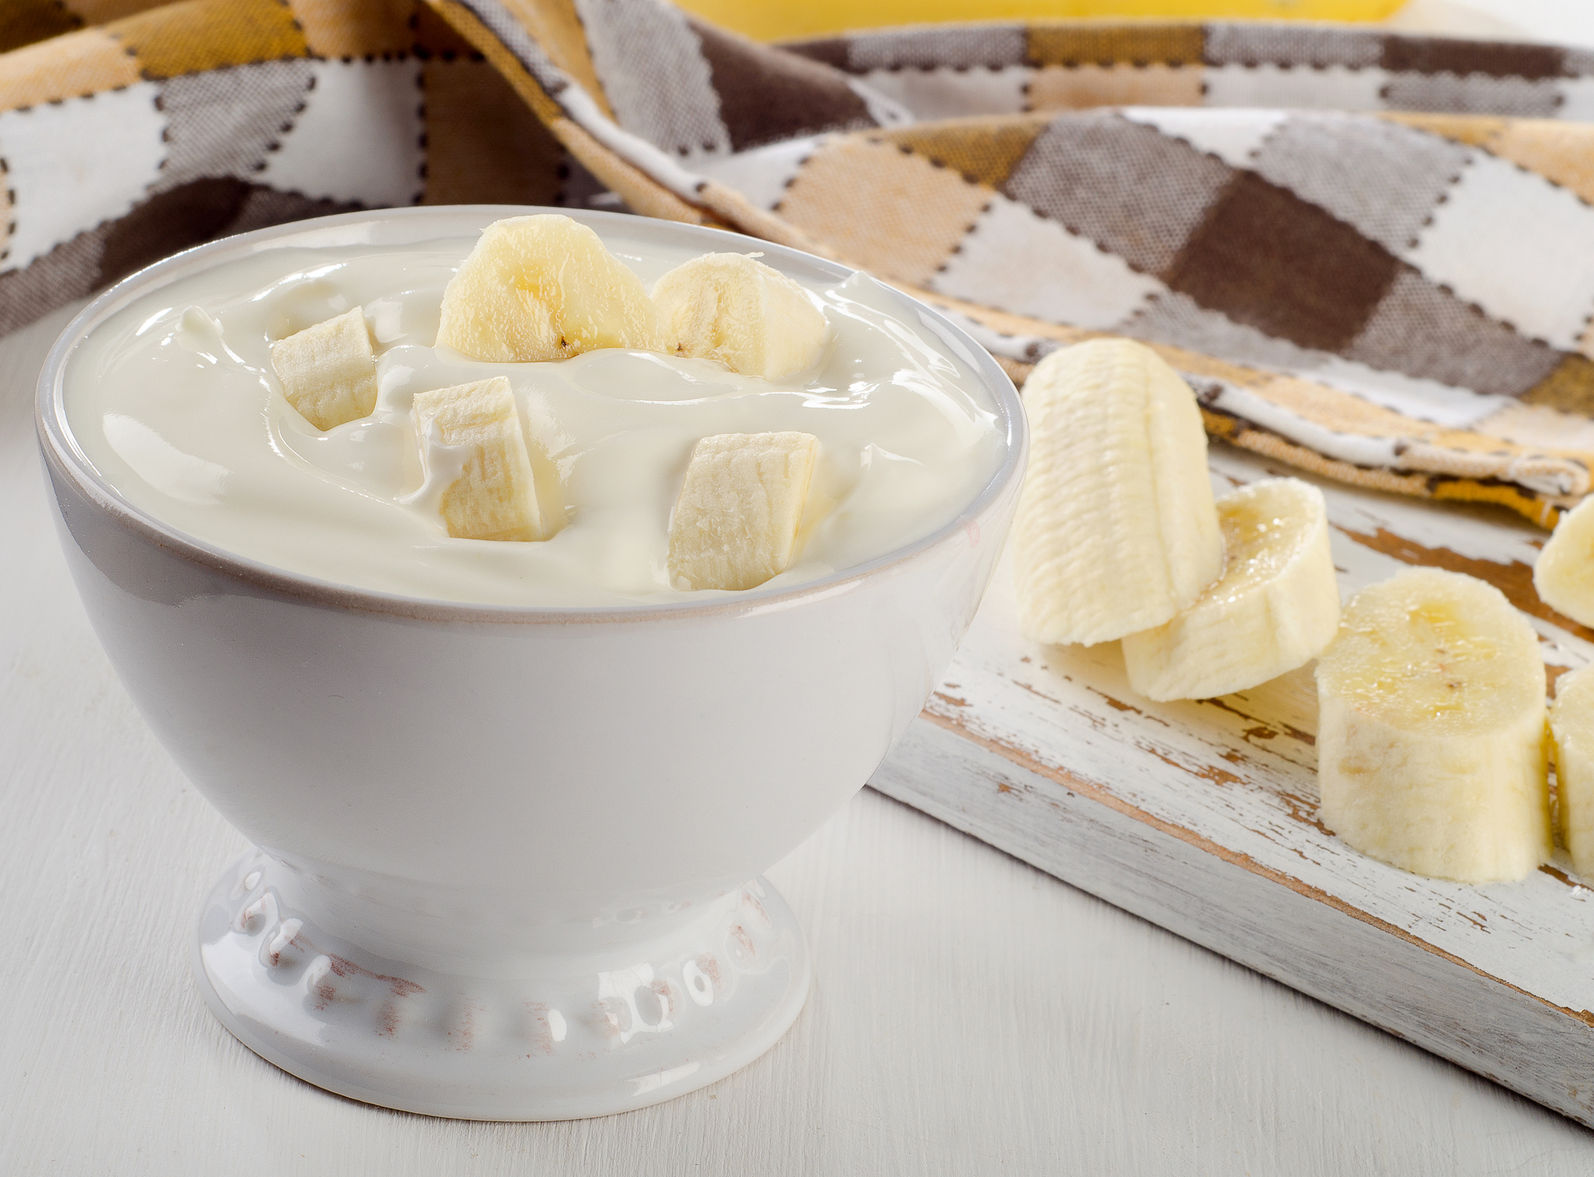 Yogurt and Banana an immune system booster     http://www.info-on-high-blood-pressure.com/Healthy-Snacks.html